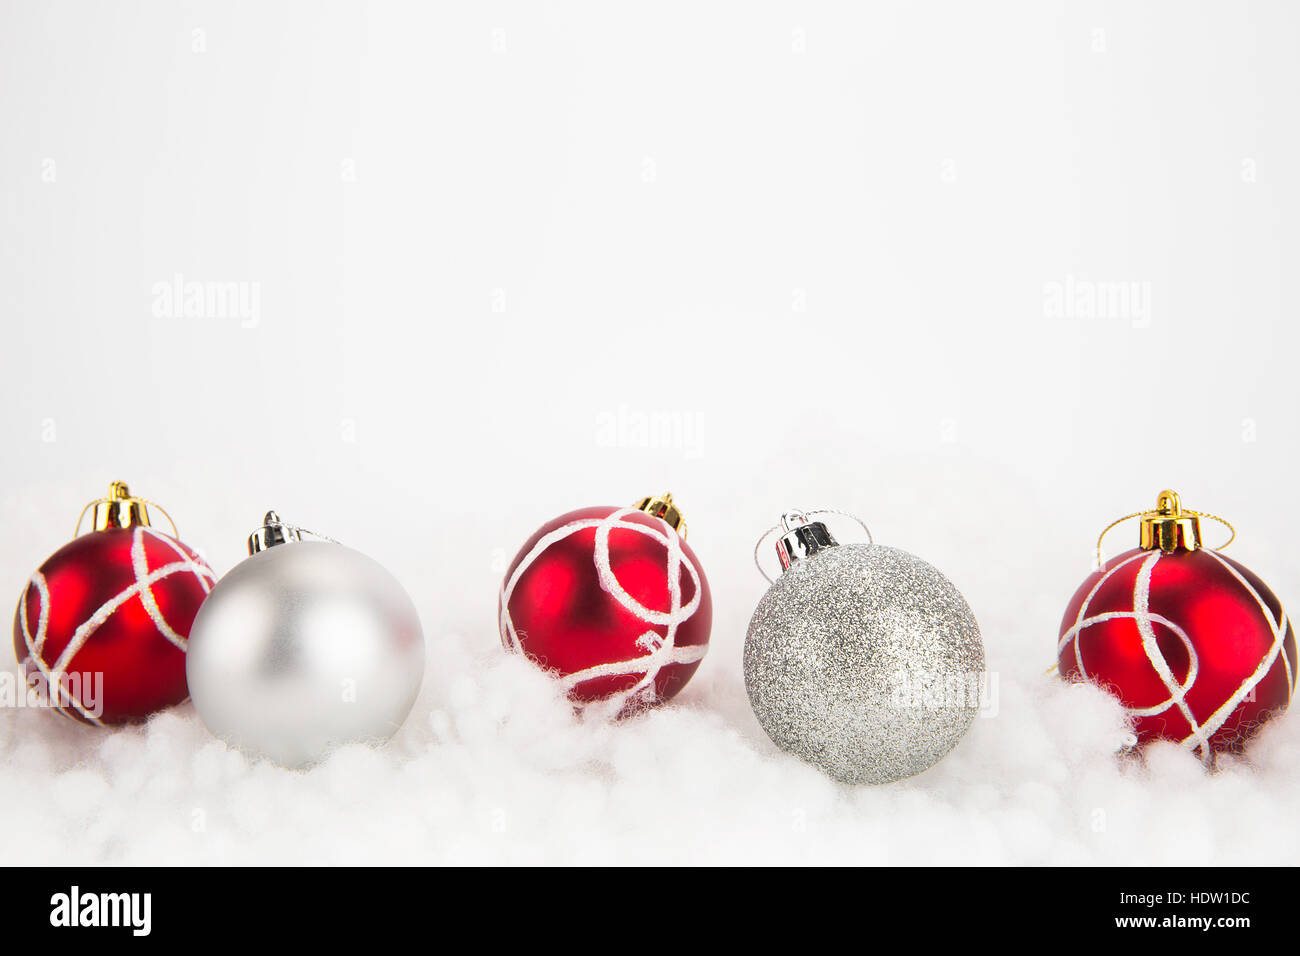 Red And Silver Christmas Balls On Abstract White Background